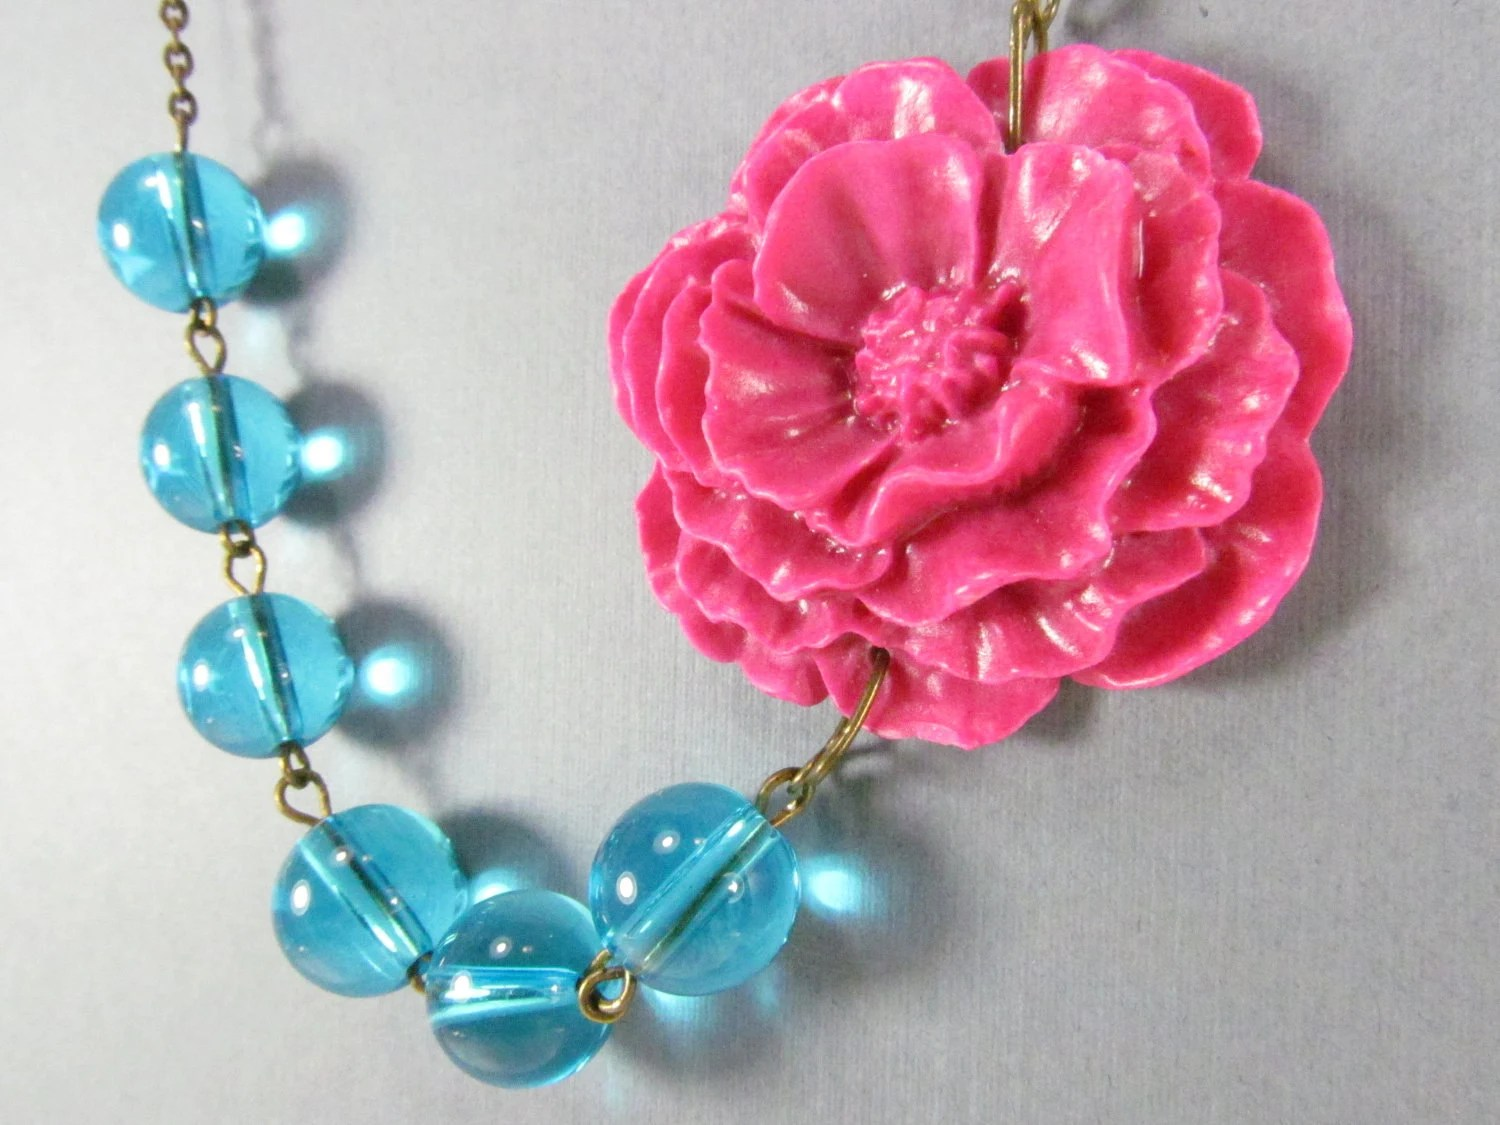 Flower Necklace, Hot Pink Cabbage Rose with Clear Blue Glass Beads, Brass Swallow, Bridesmaid Necklace - ElmasBox